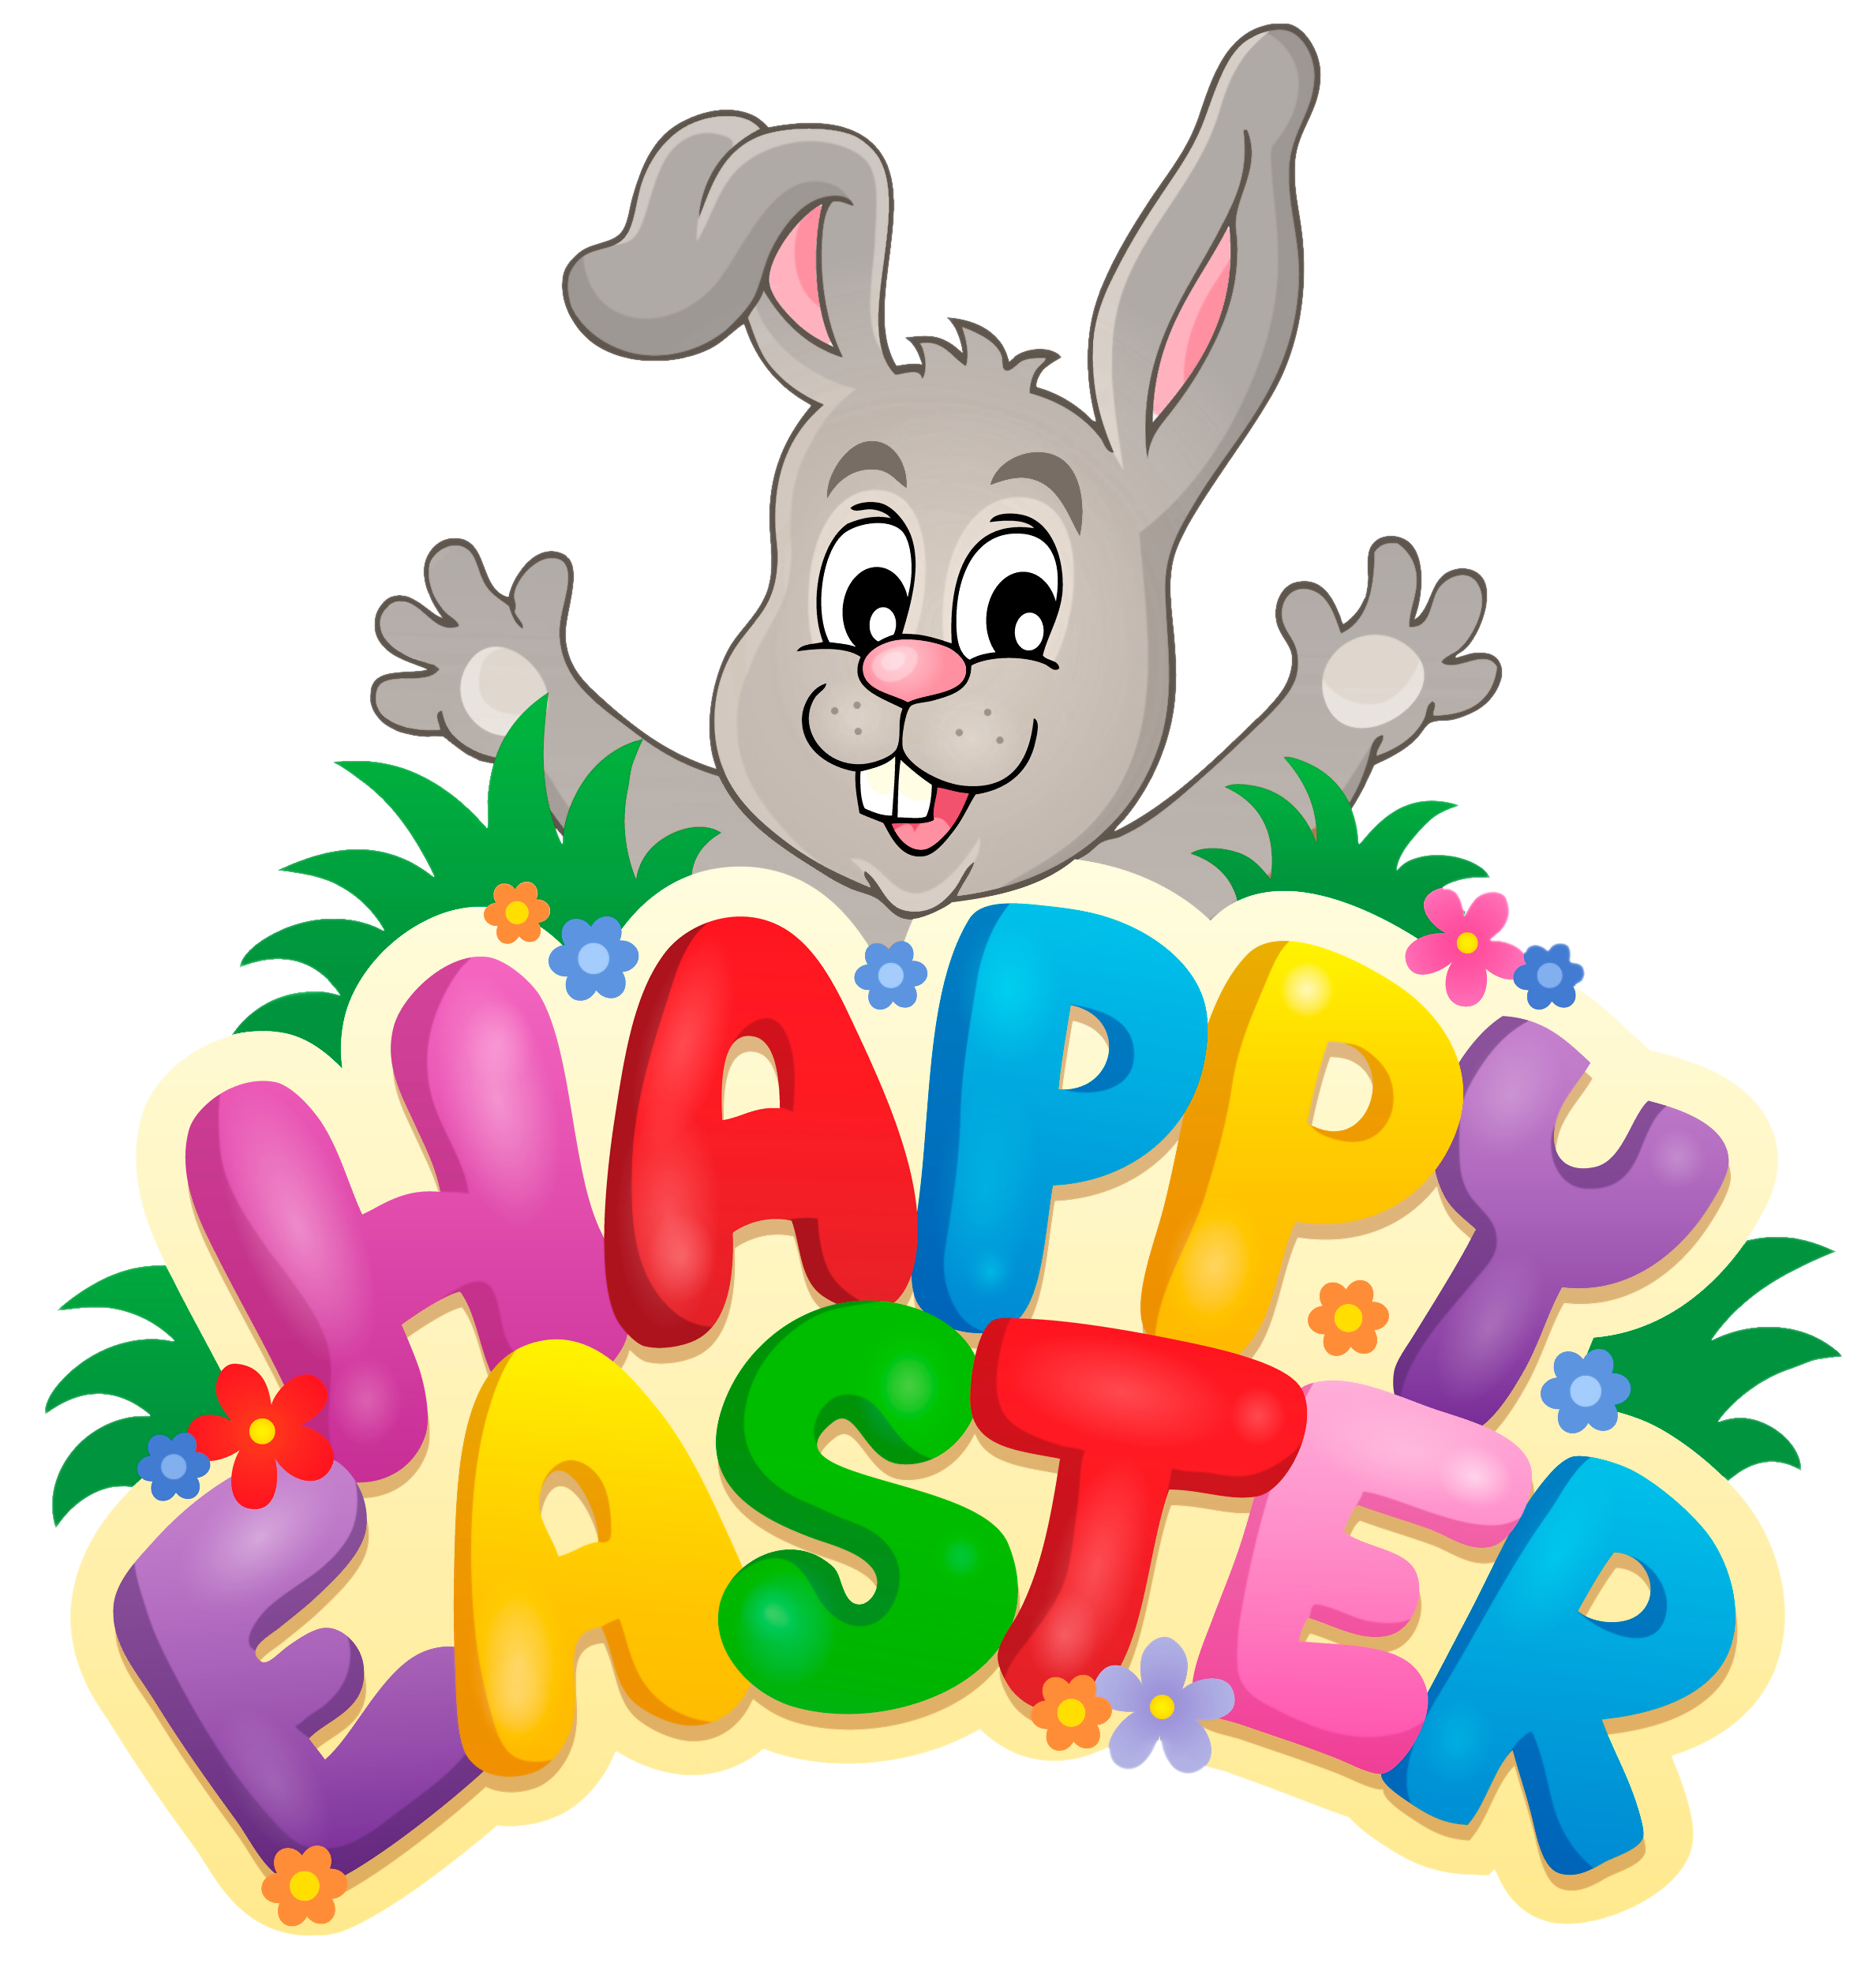 Happy easter pictures clipart picture royalty free library Transparent Happy Easter with Bunny PNG Clipart Picture | Gallery ... picture royalty free library